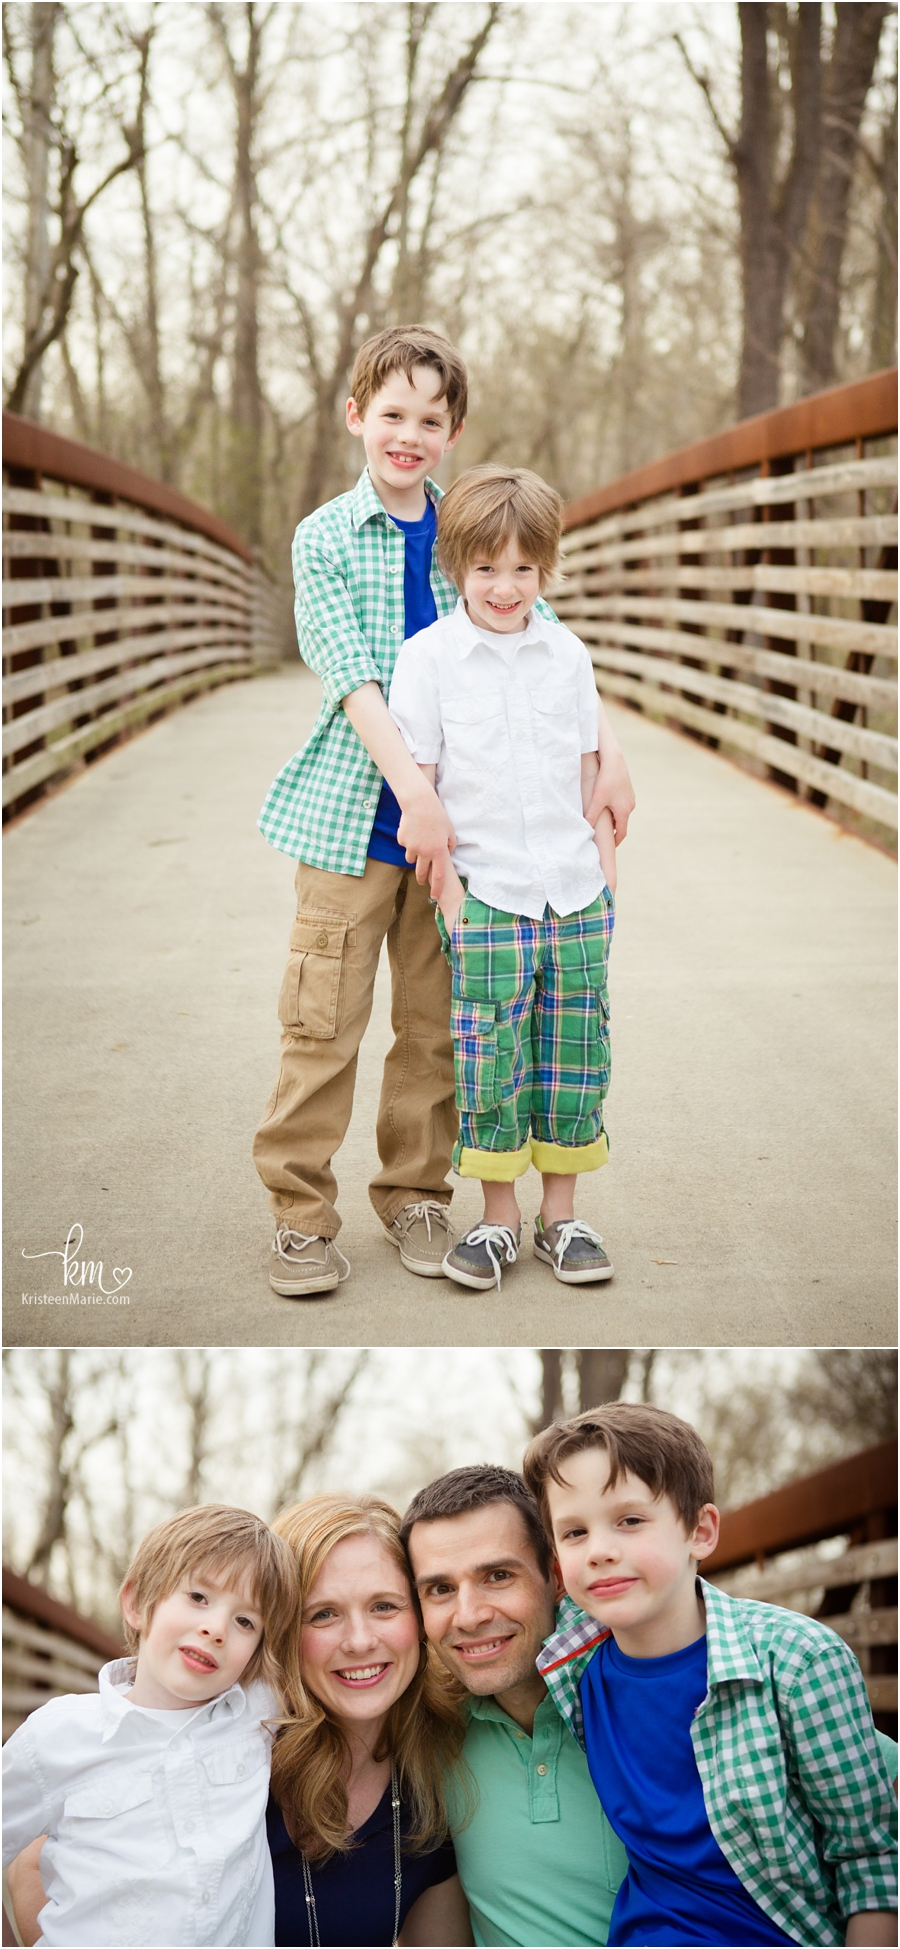 outfit ideas for family photography